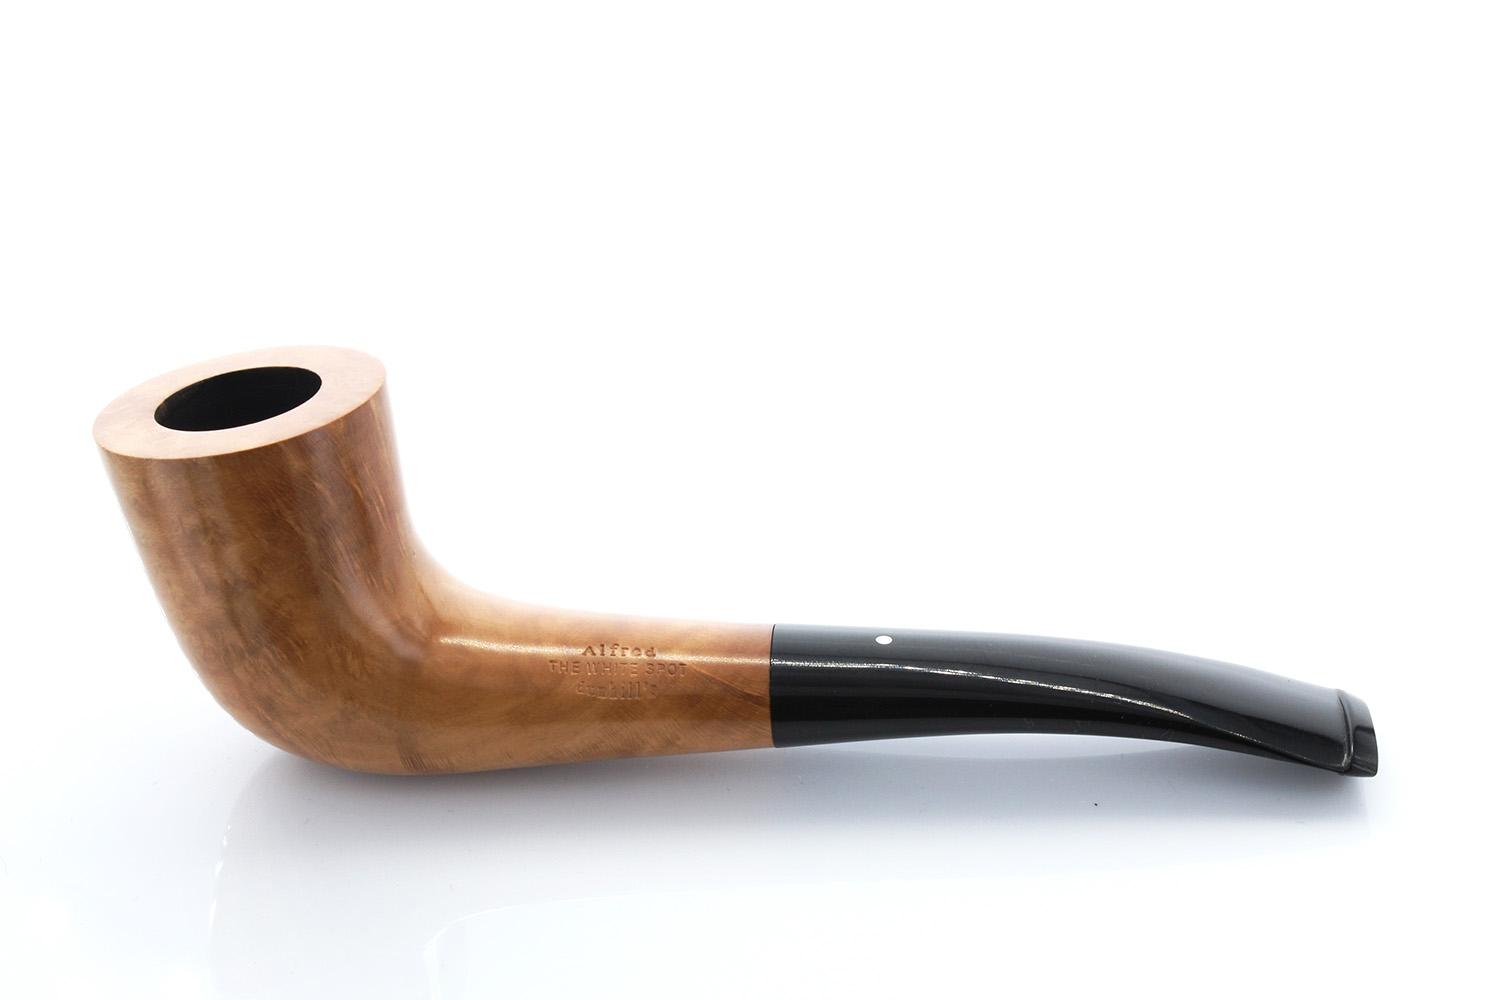 White Spot Root Briar Pipe - 3421 Made by Alfred Dunhill